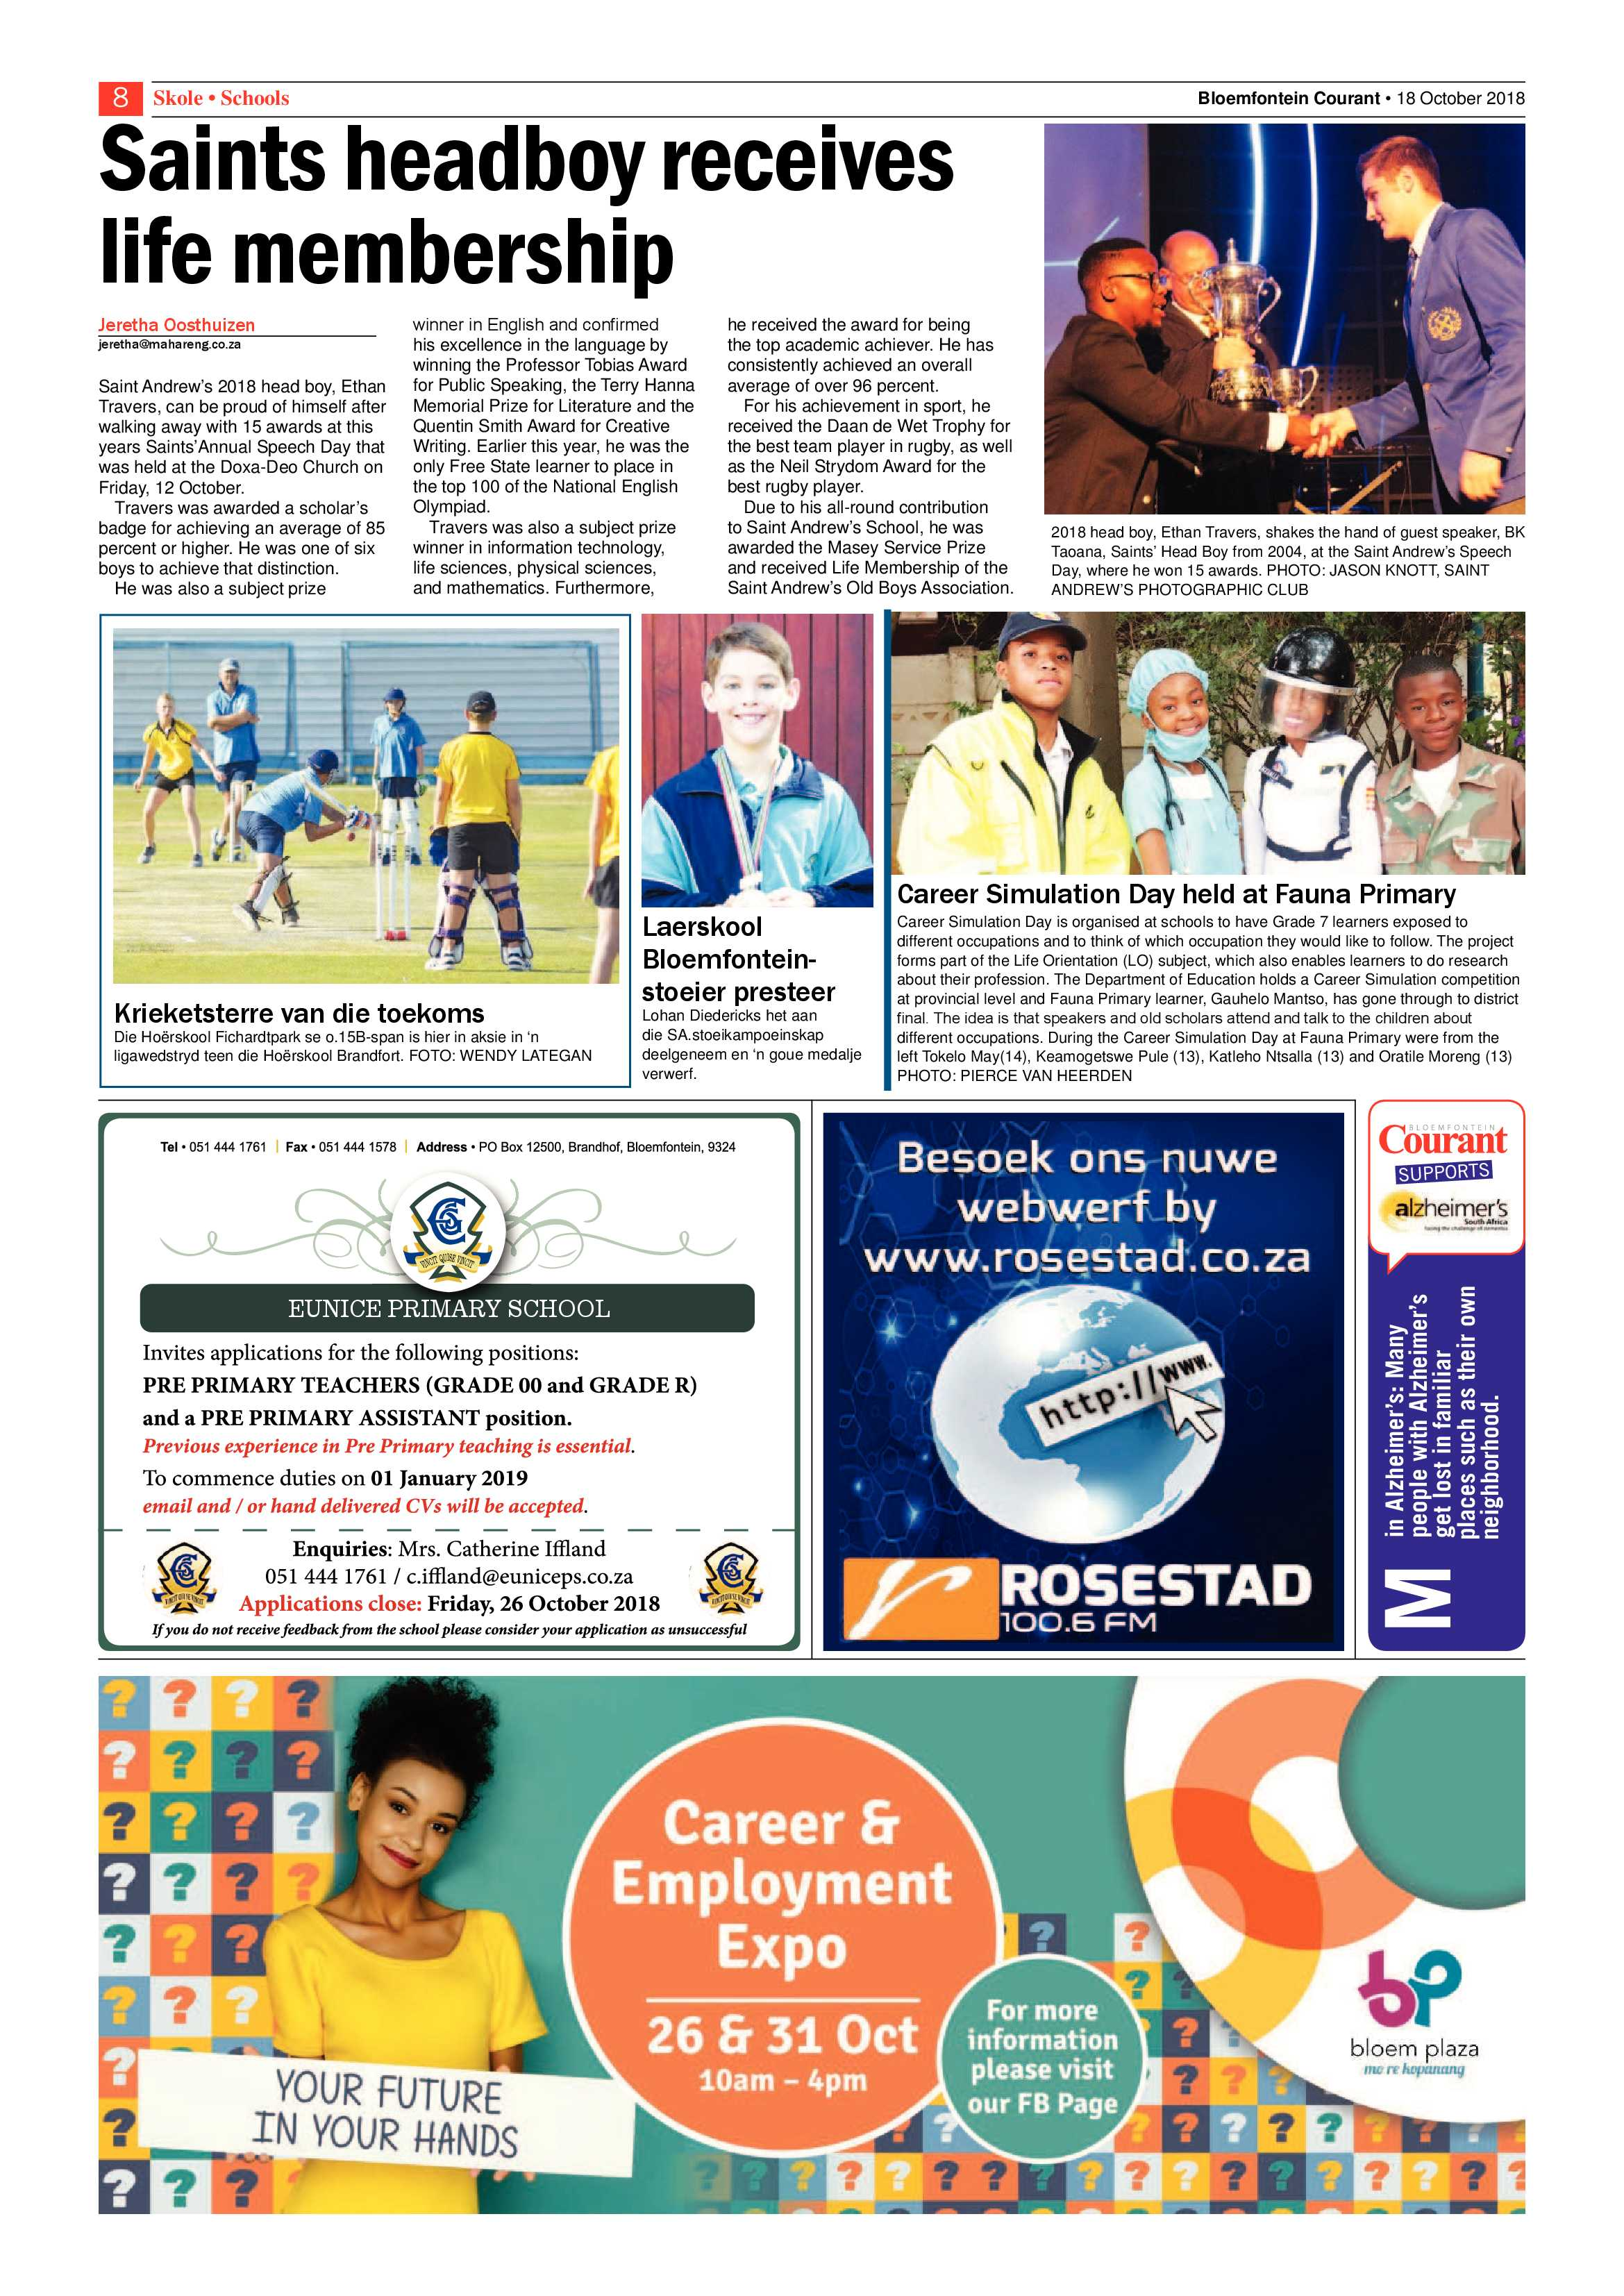 courant-18-october-2018-epapers-page-8